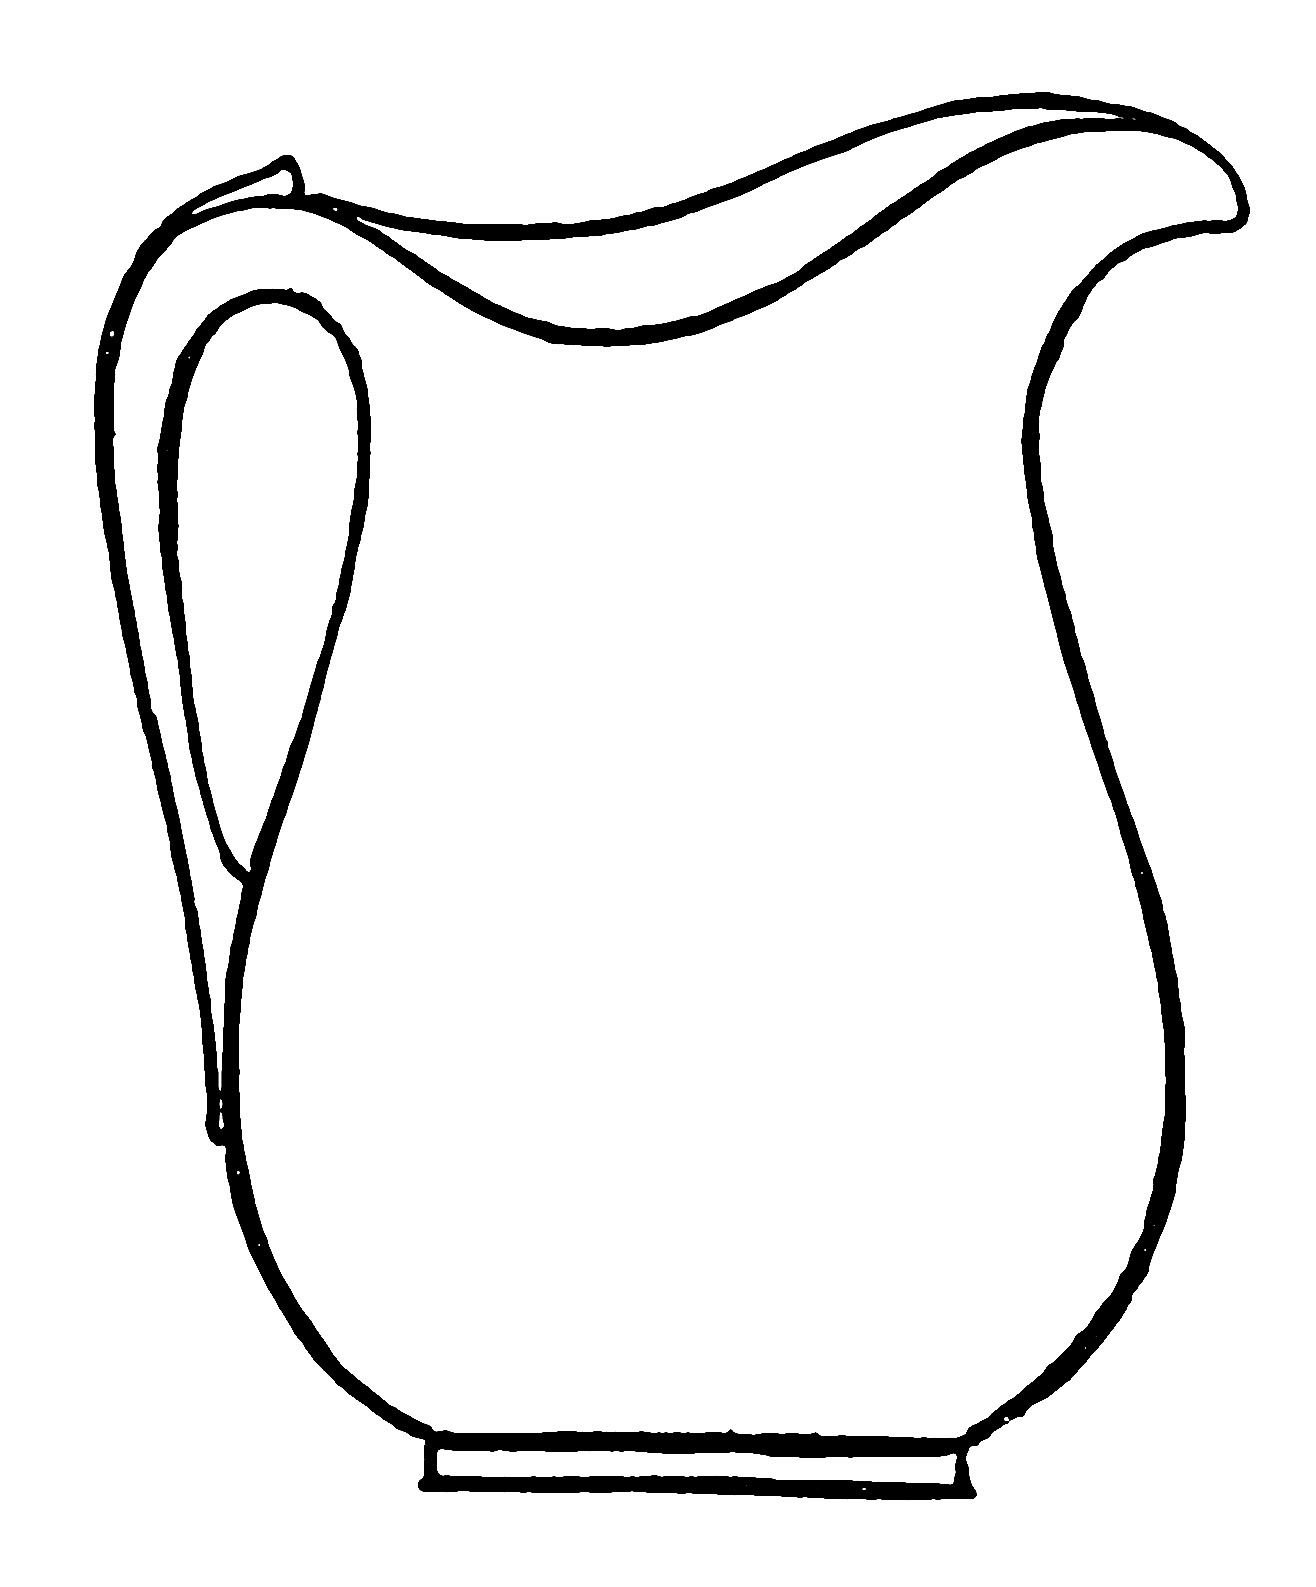 vintage advertising clip art ironstone pitcher the graphics fairy [ 1316 x 1587 Pixel ]